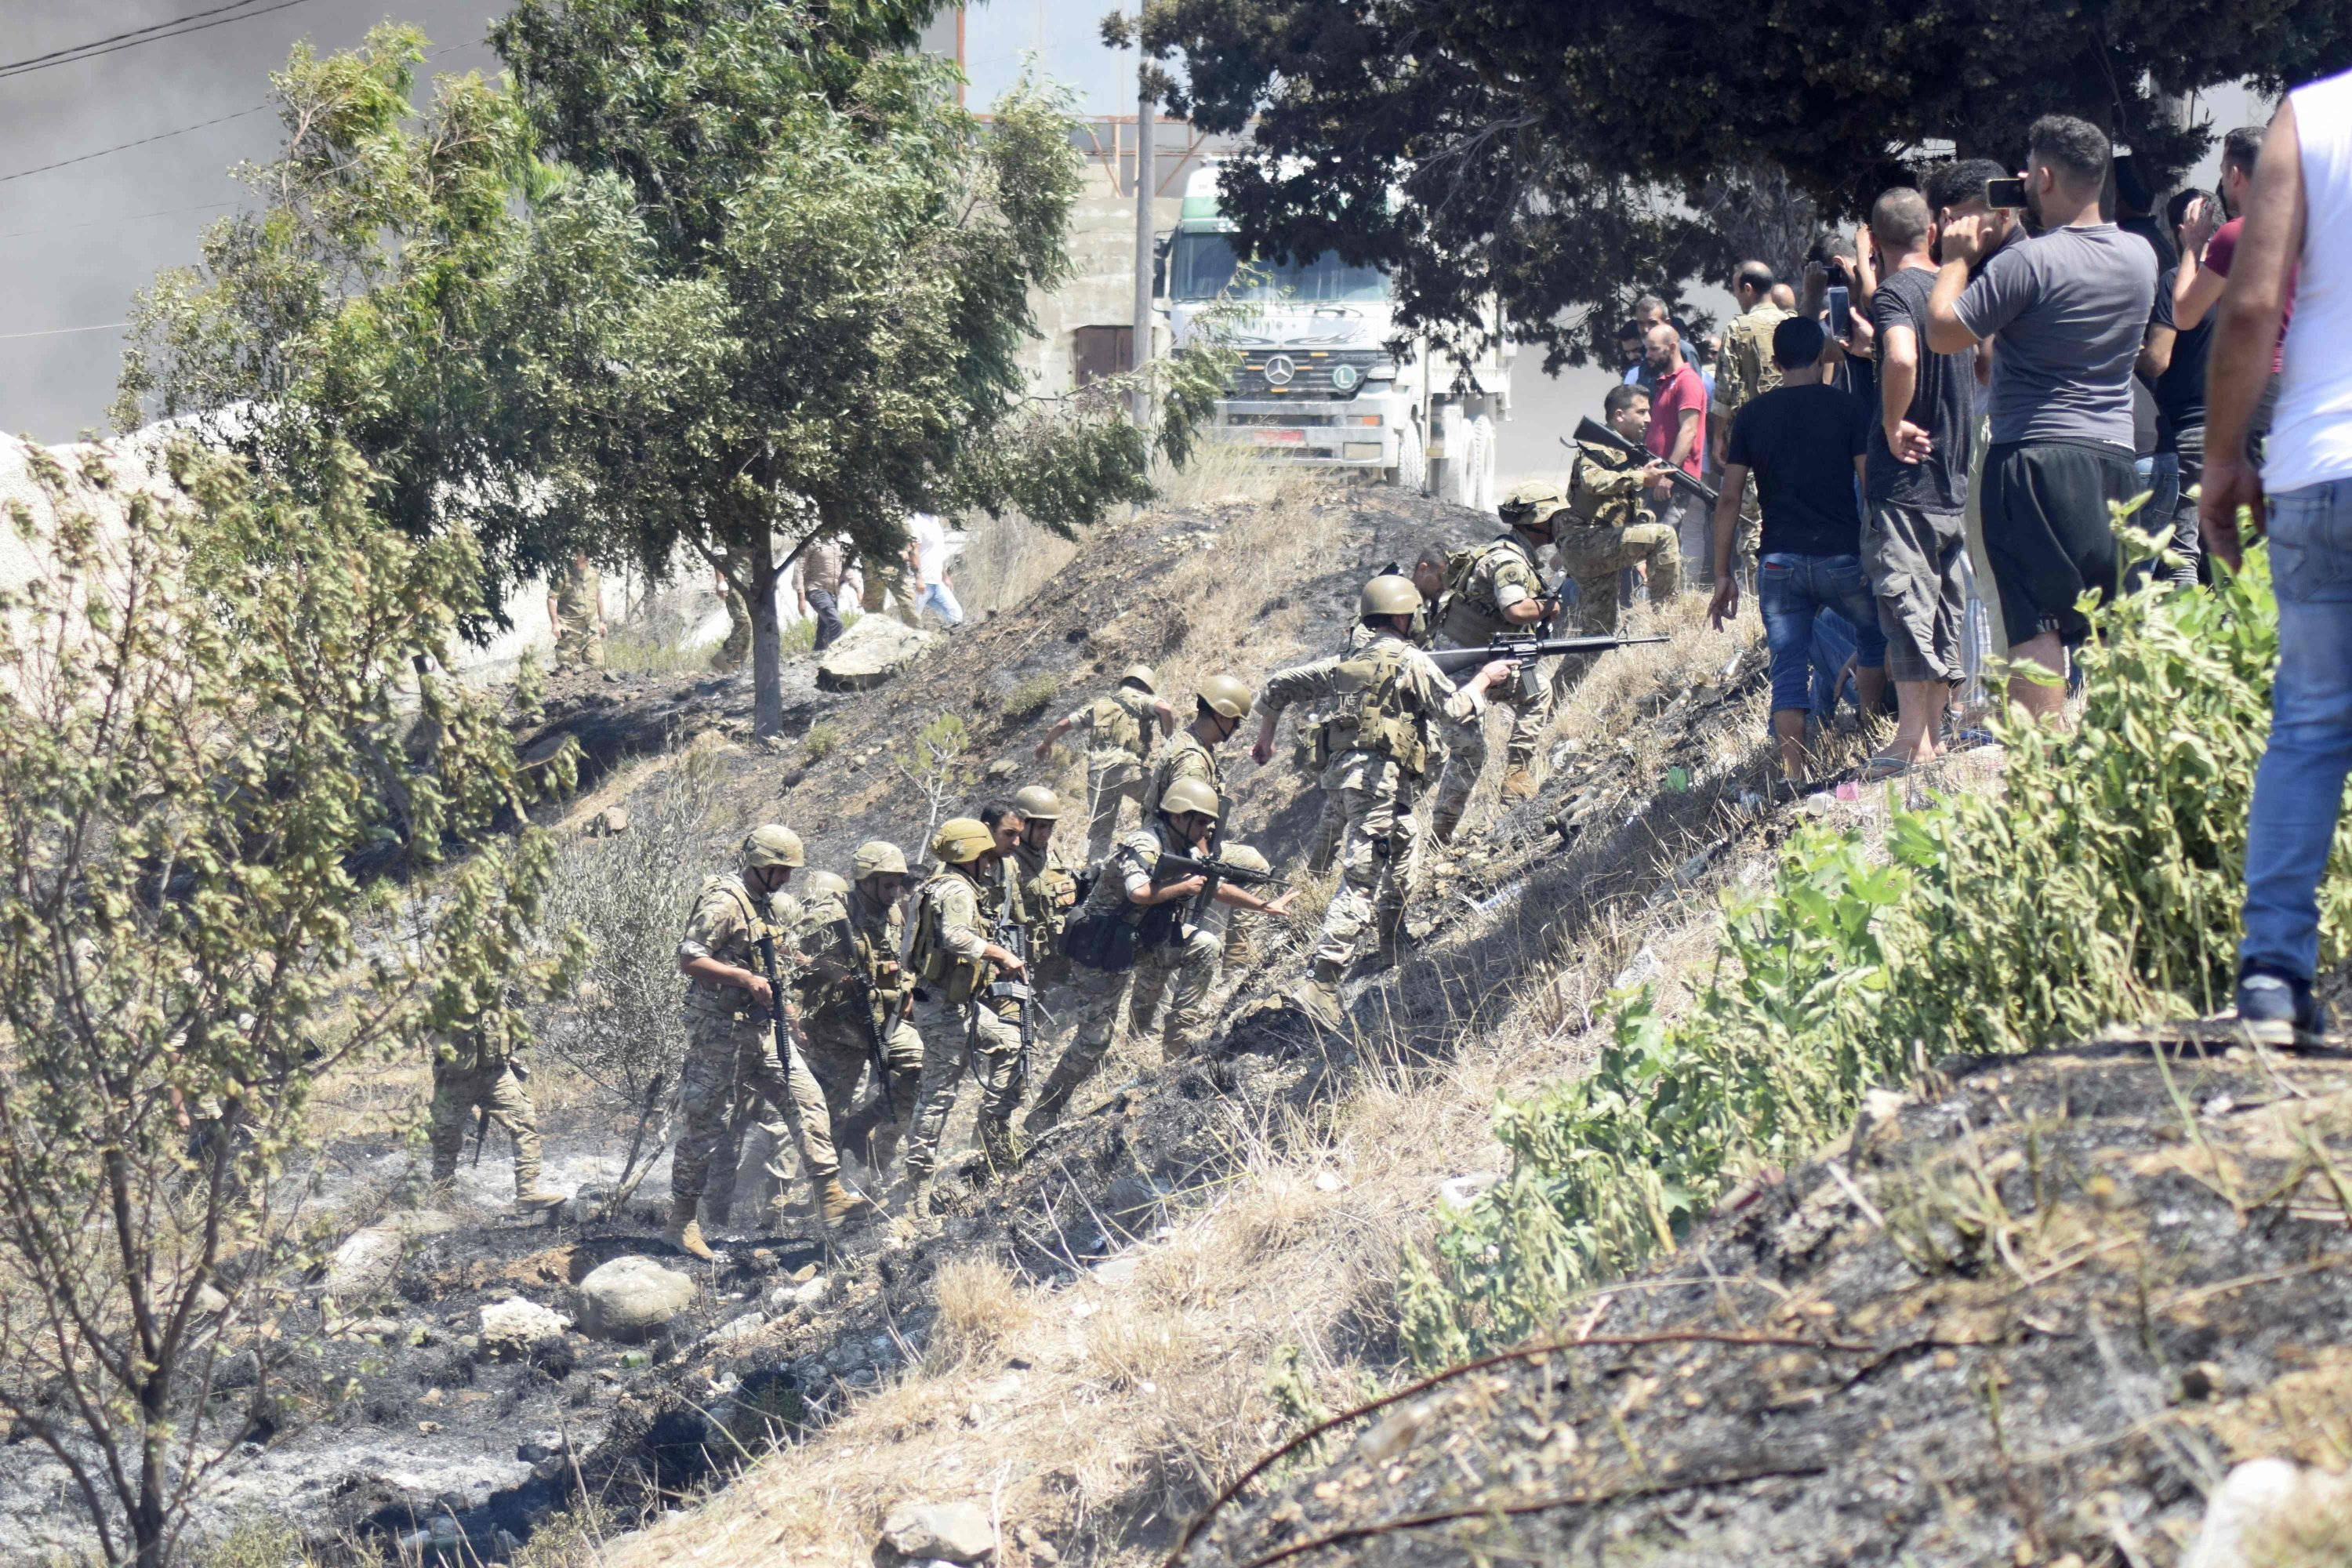 Lebanese army soldiers evacuate the area surrounding the reported home of the lot owner, where the exploded fuel tank was placed, after it was set ablaze by angry locals in the village of Tlel in Lebanon's northern region of Akkar, Aug. 15, 2021. (AFP Photo)